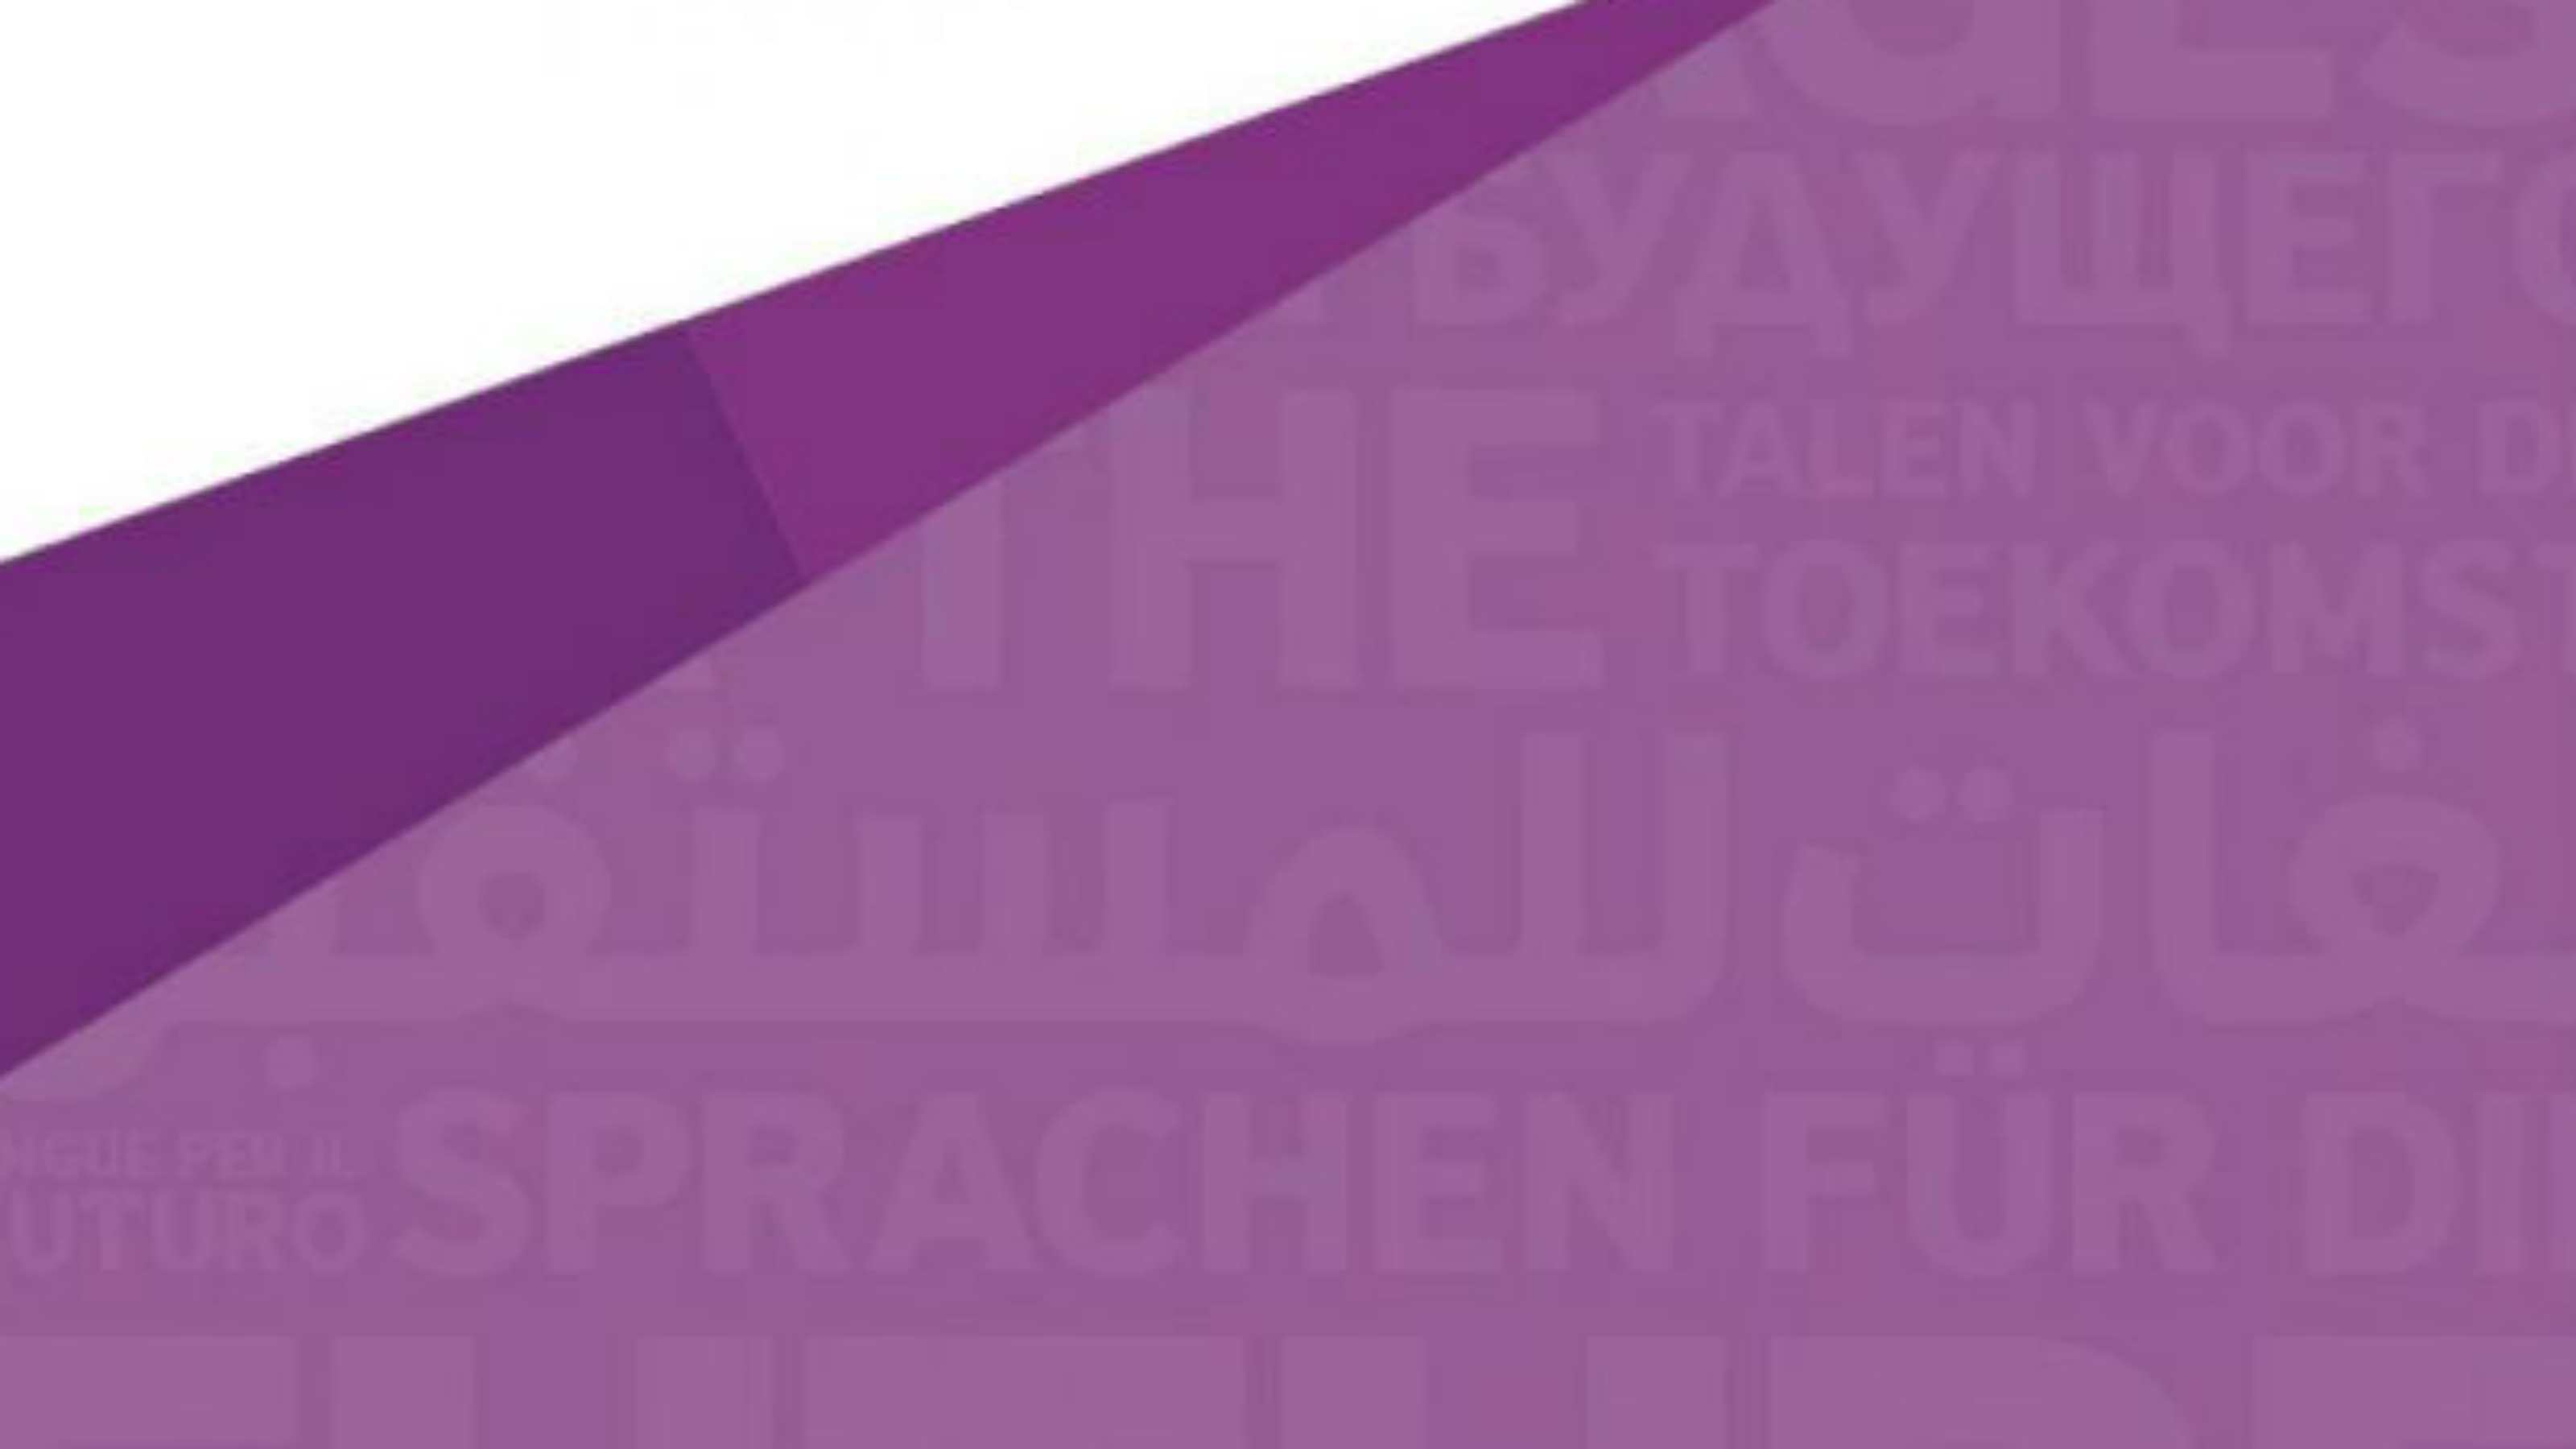 A purple and white banner for Languages for the Future.